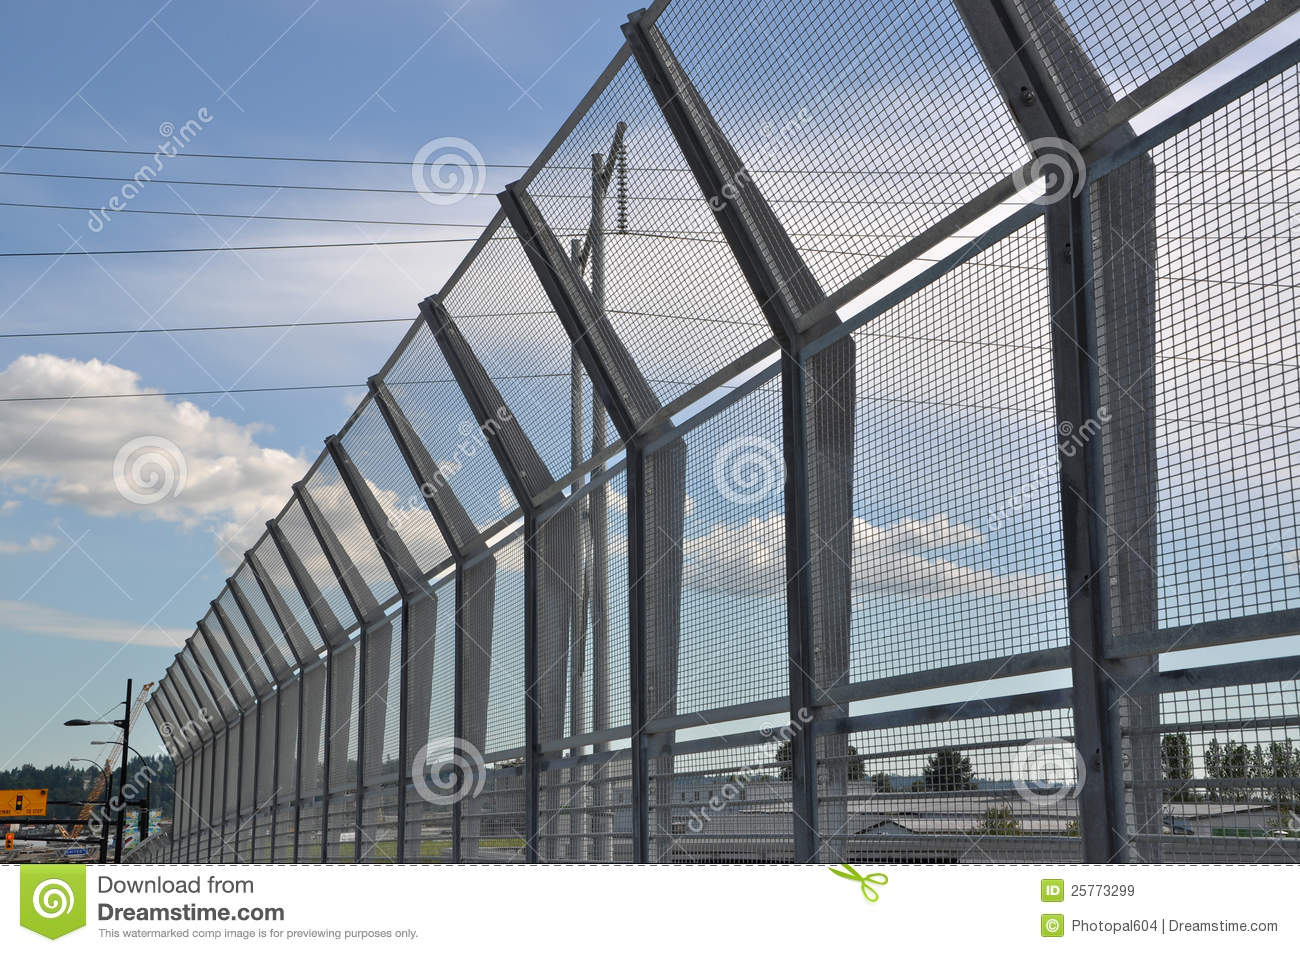 High Security Fence Stock Image Image Of Spikes Secure